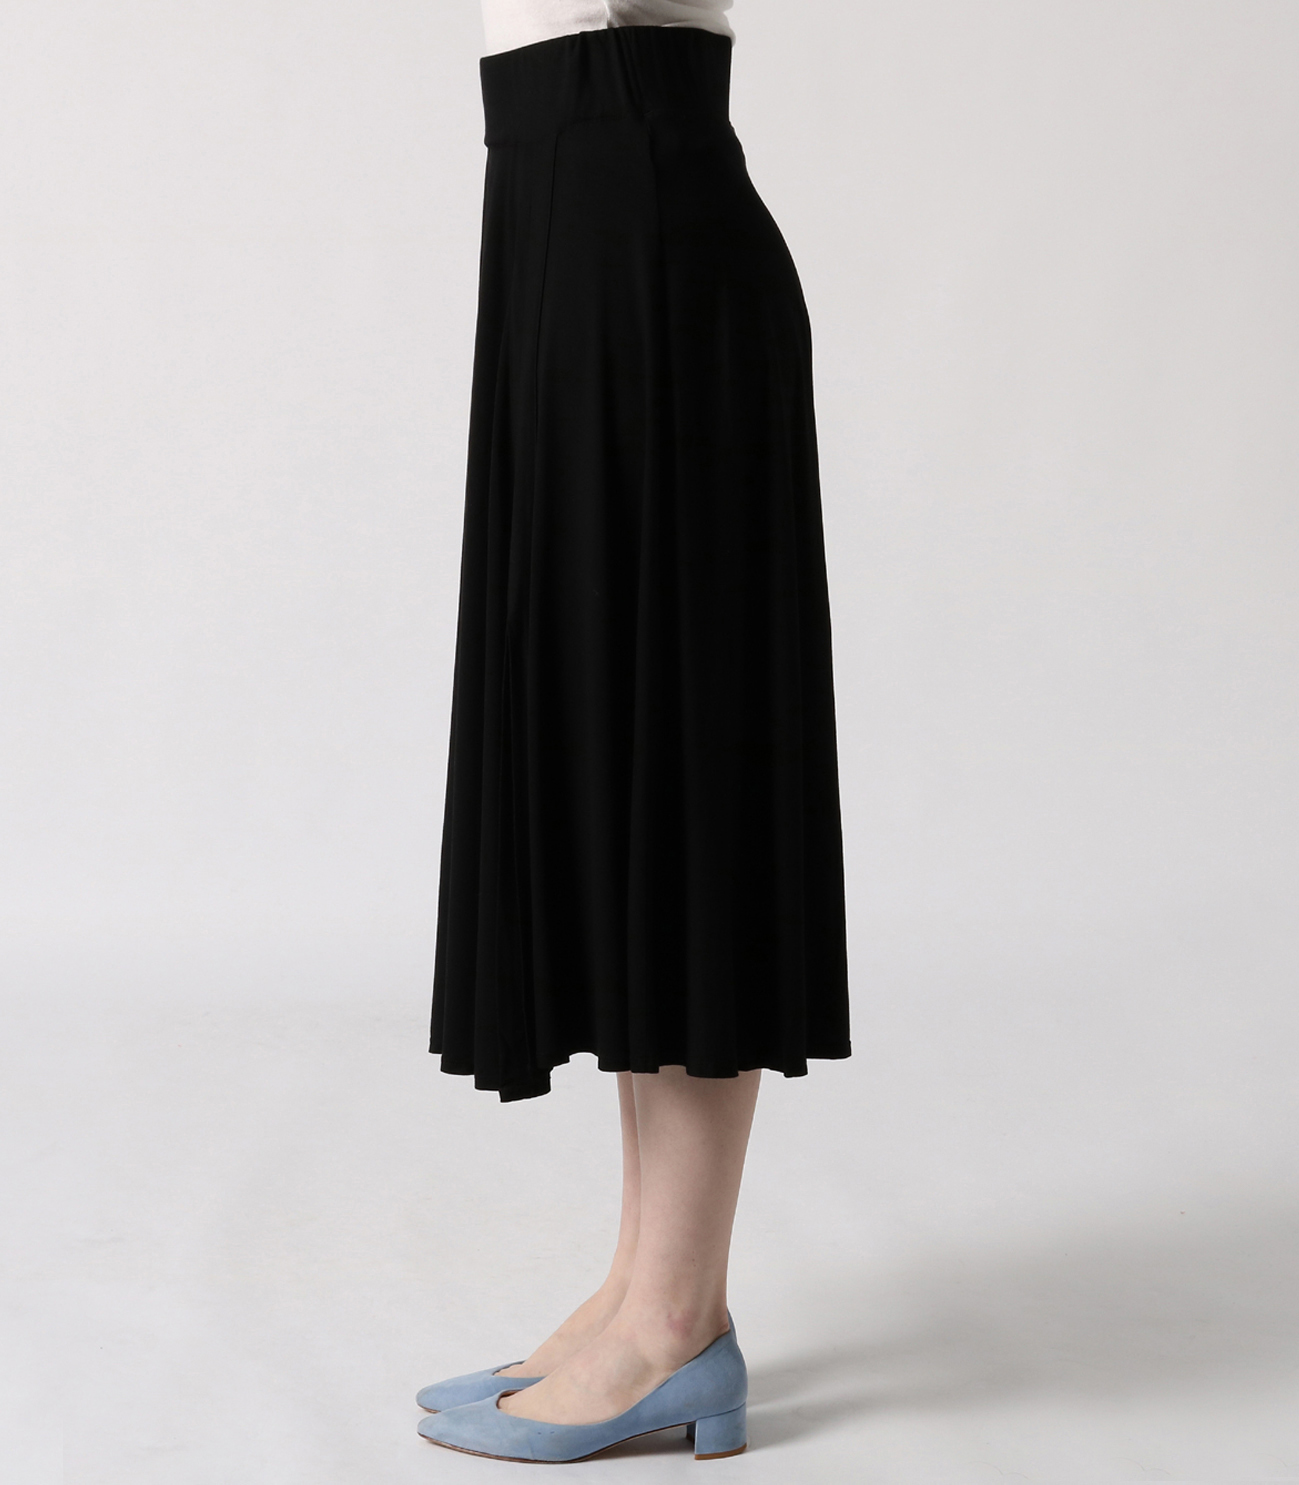 refined jersey flared skirt 詳細画像 black 3